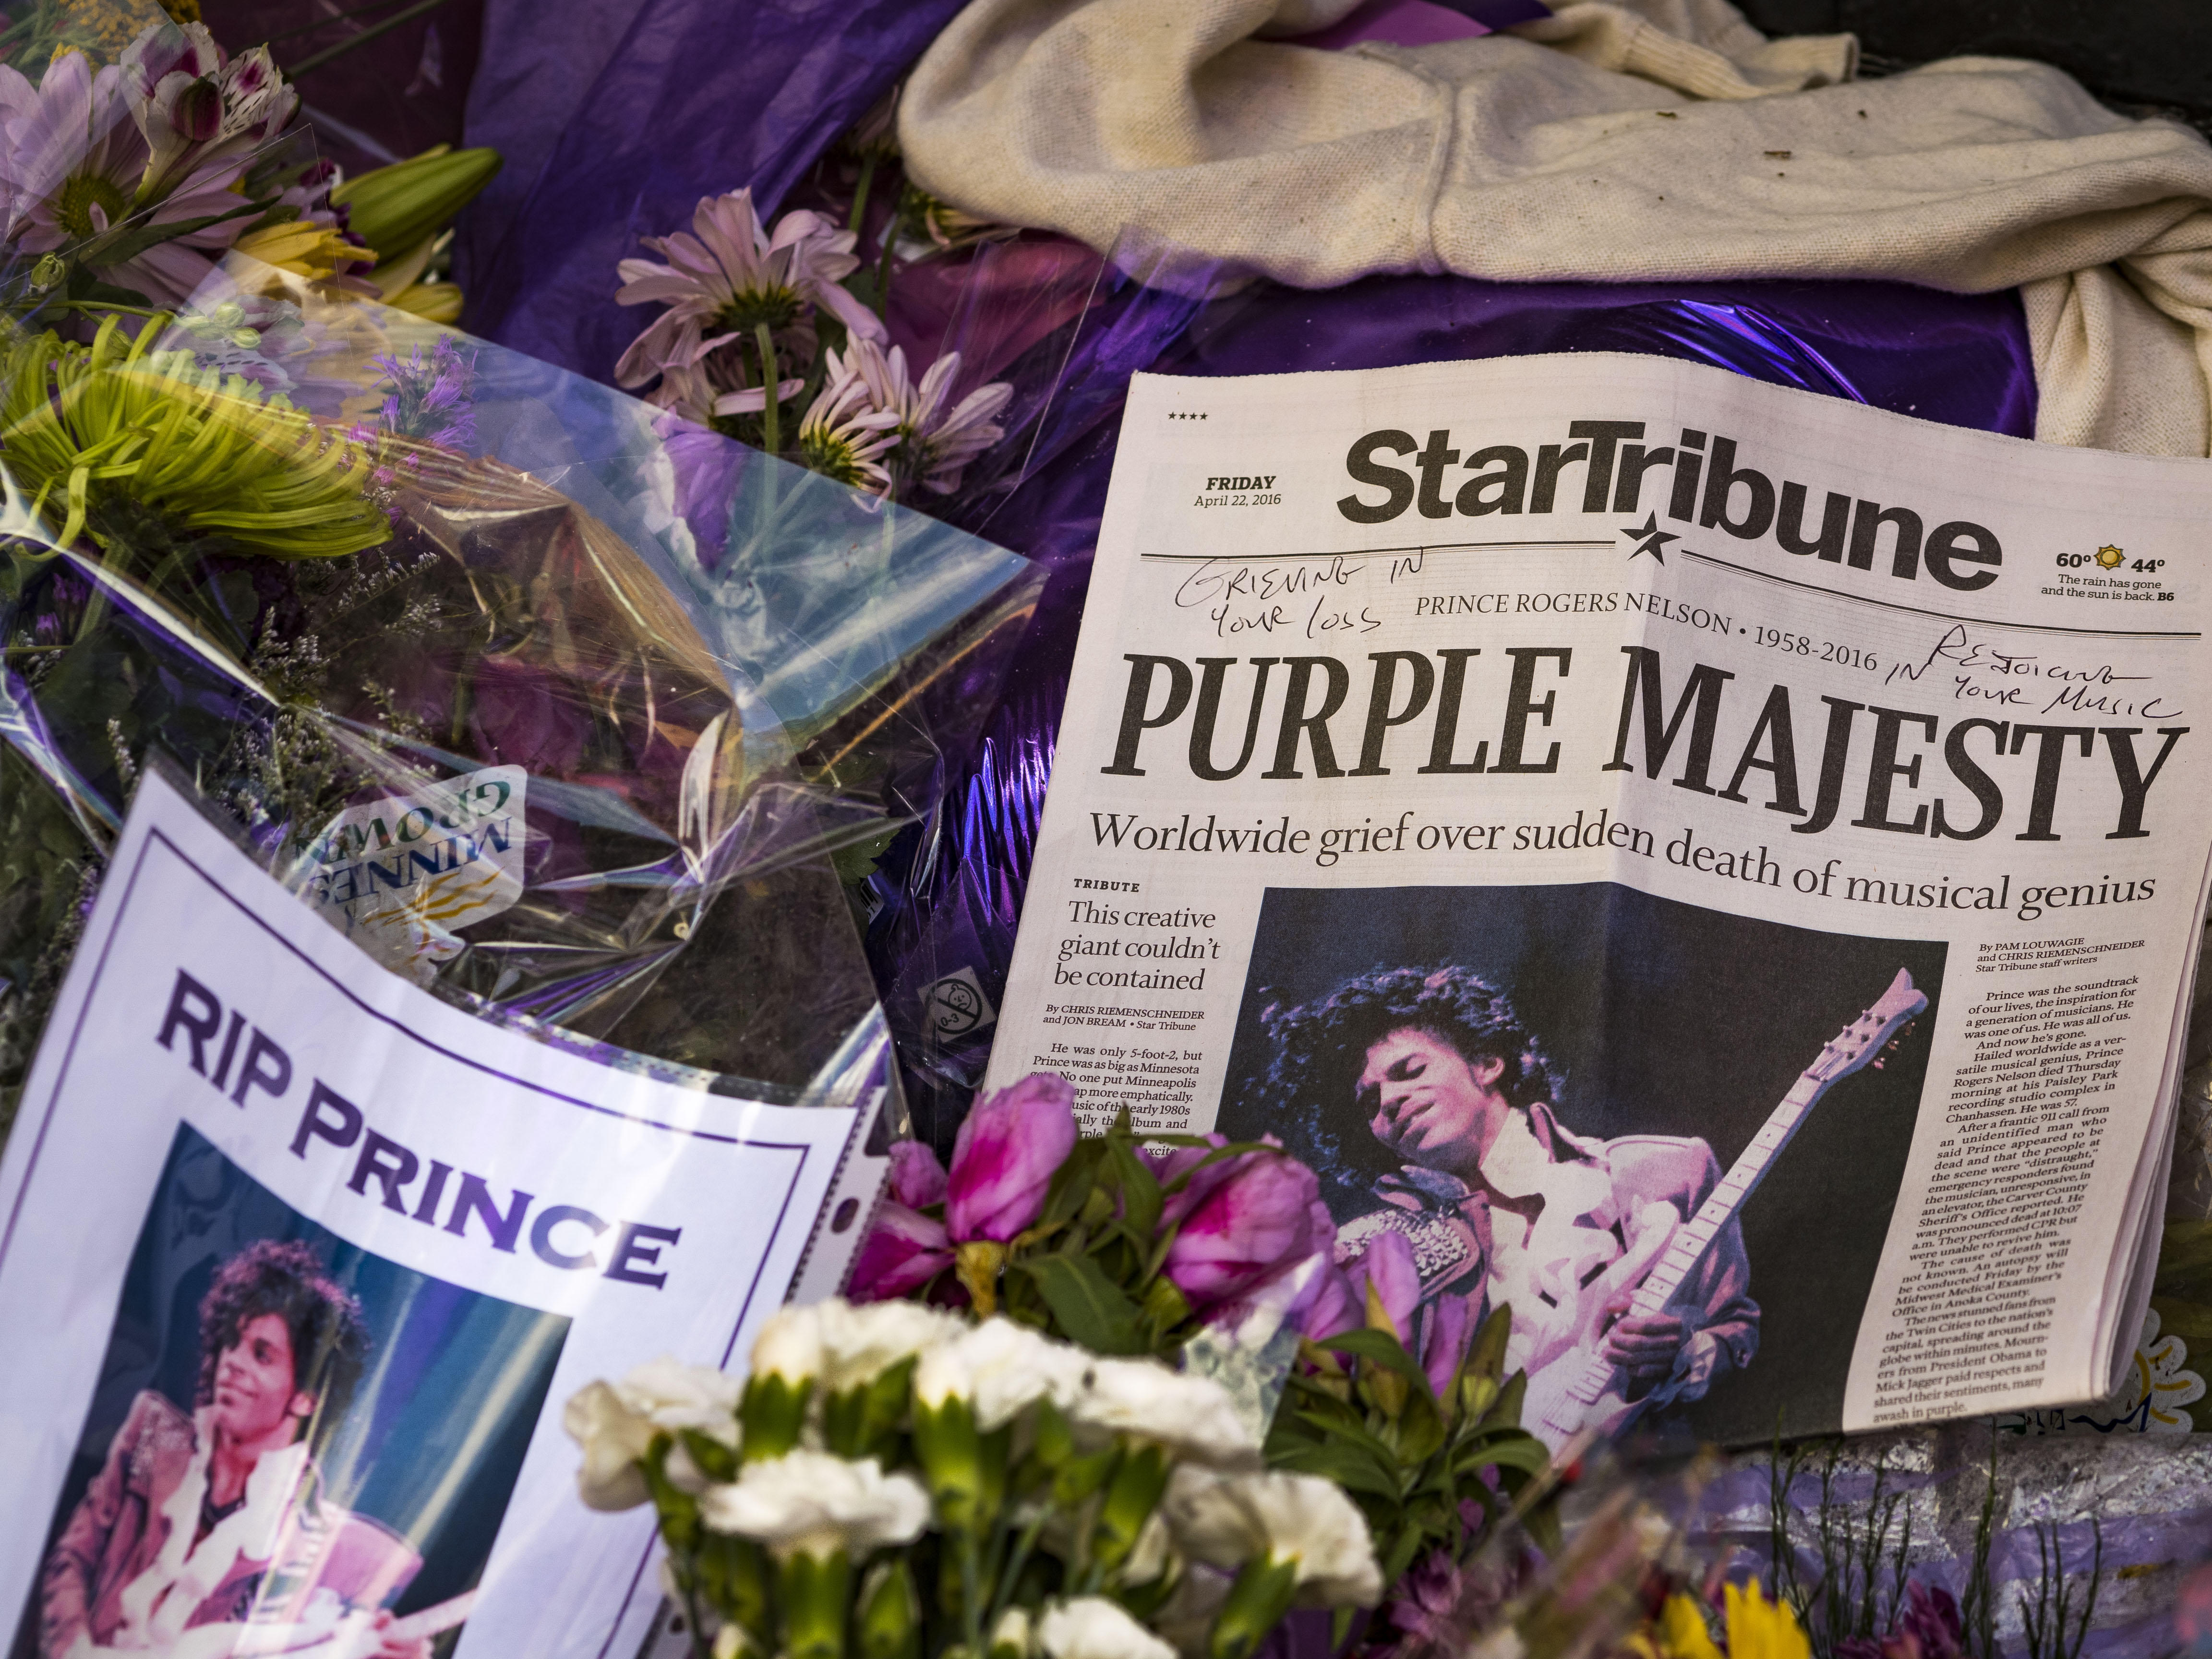 Memorial for the artist Prince with newspaper cuttings from the day of his death, flowers and a sign that says 'RIP Prince'